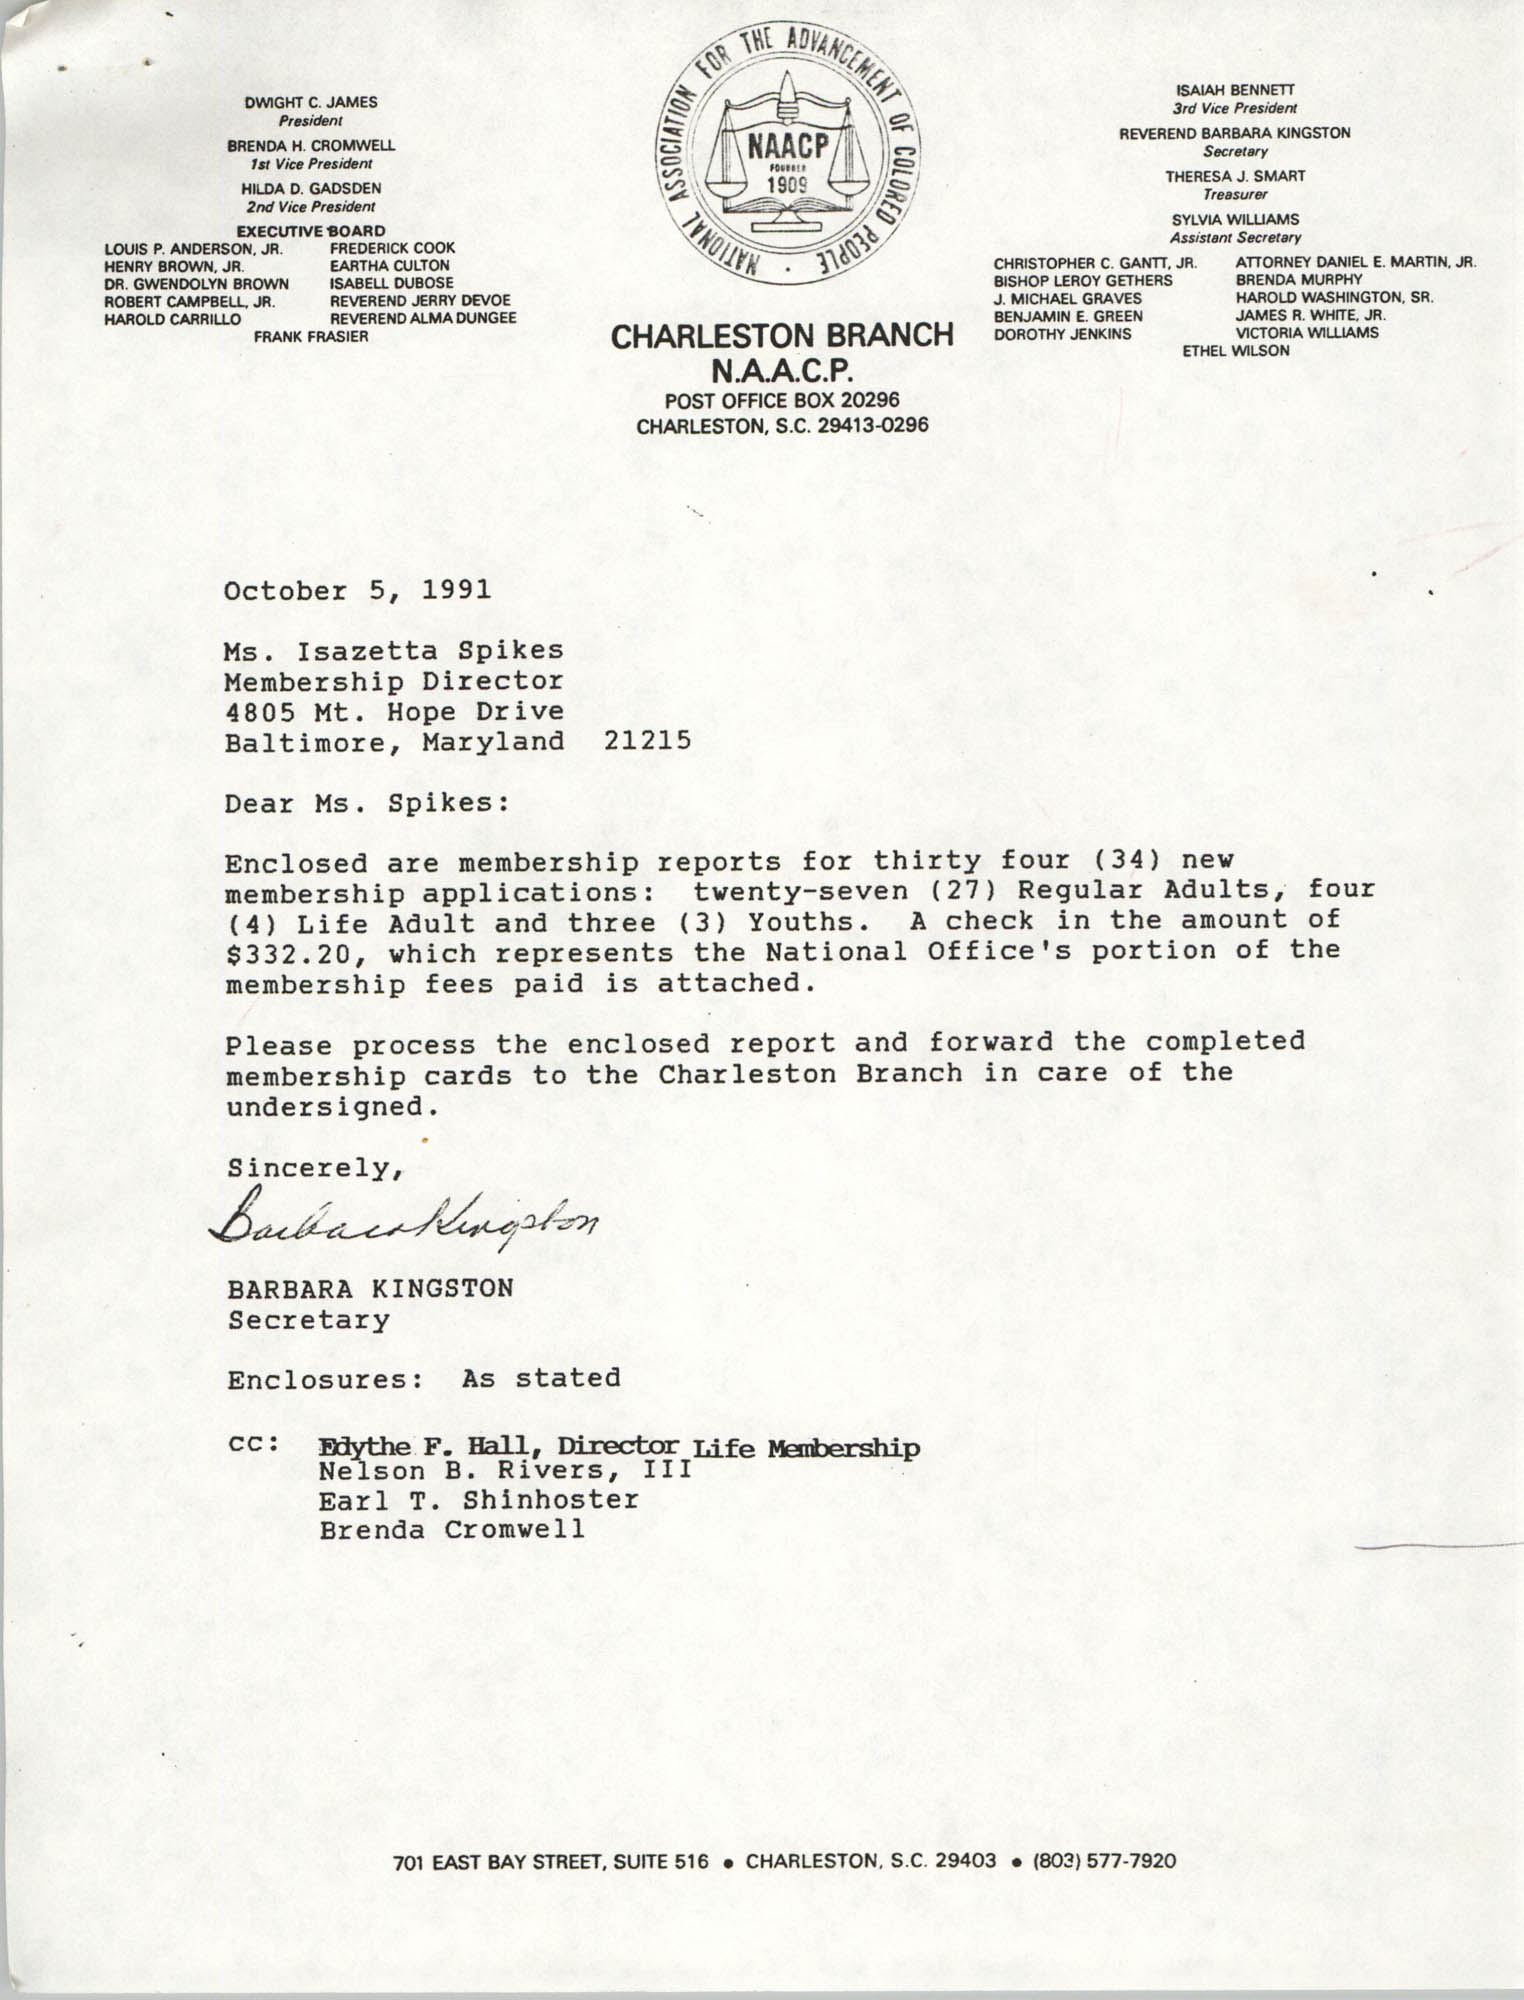 Letter from Barbara Kingston to Isazetta Spikes, October 5, 1991